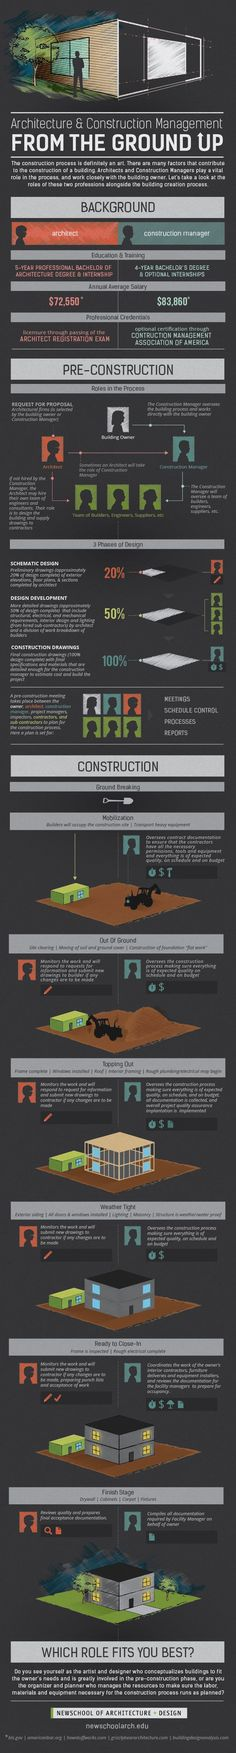 Infographic: Architecture vs. Construction Management | NewSchool of Architecture + Design #infographic #business